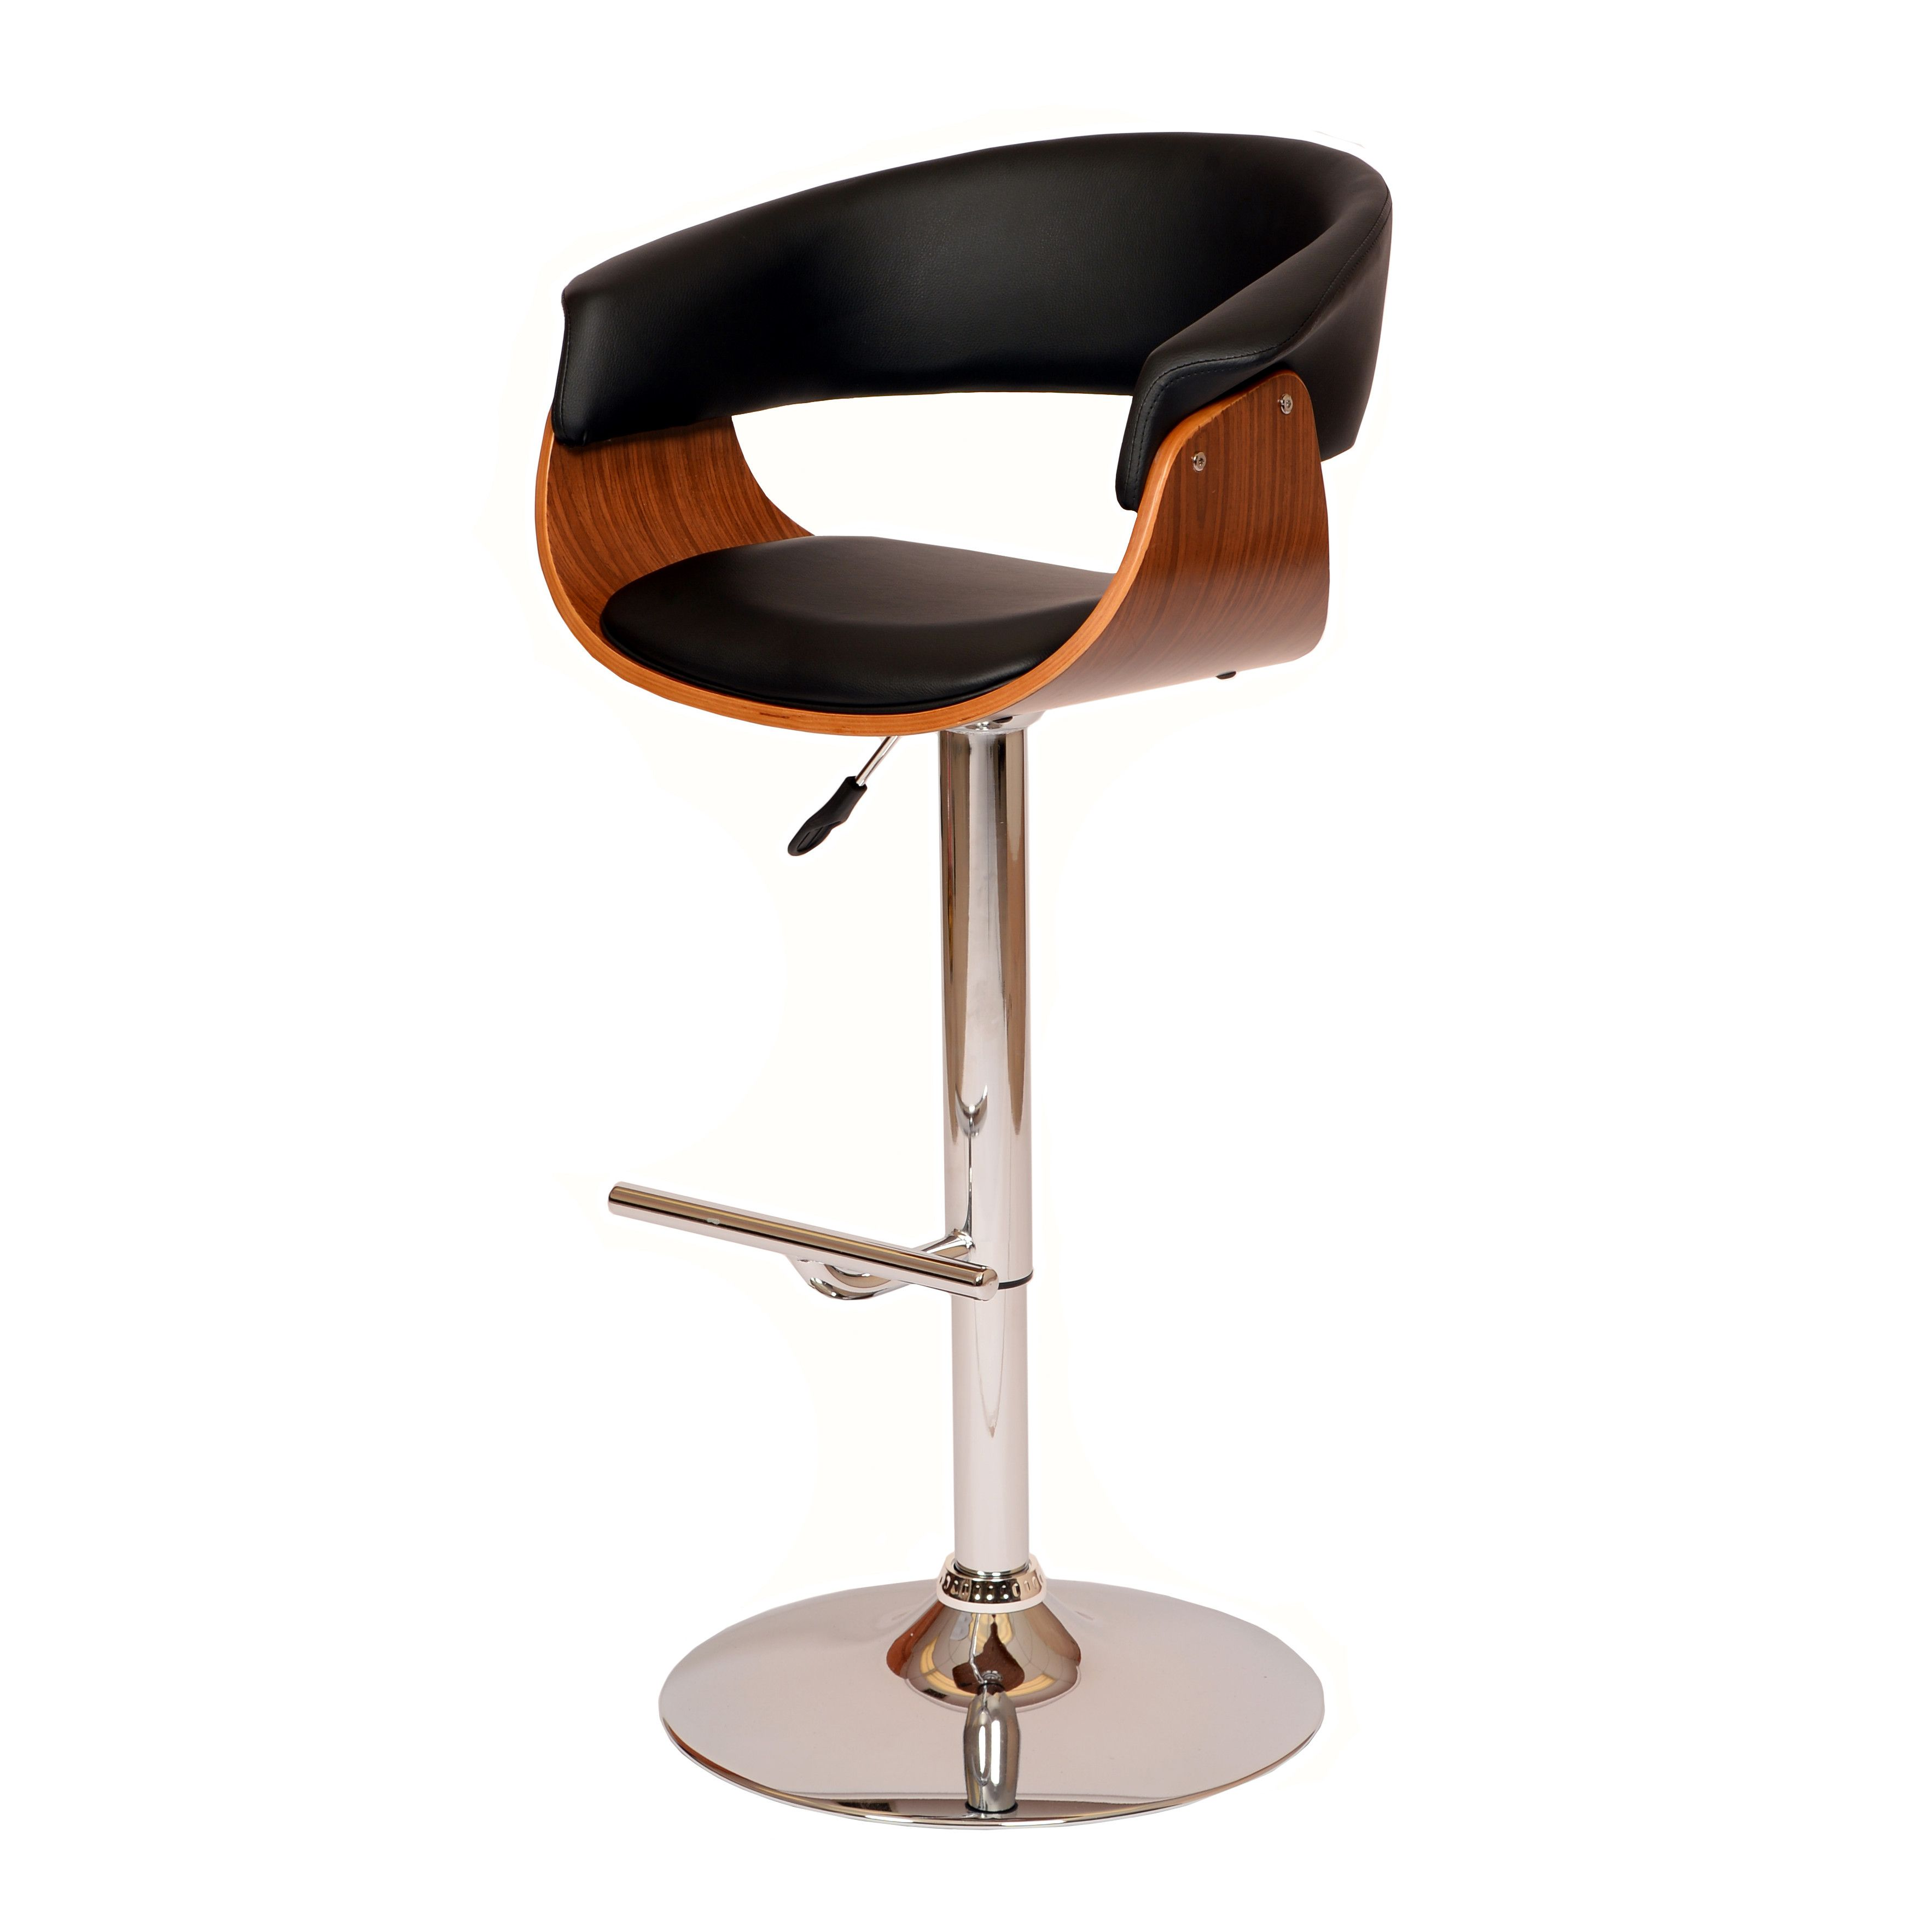 Awe Inspiring Wingert Adjustable Height Swivel Bar Stool Welcome To My Gmtry Best Dining Table And Chair Ideas Images Gmtryco